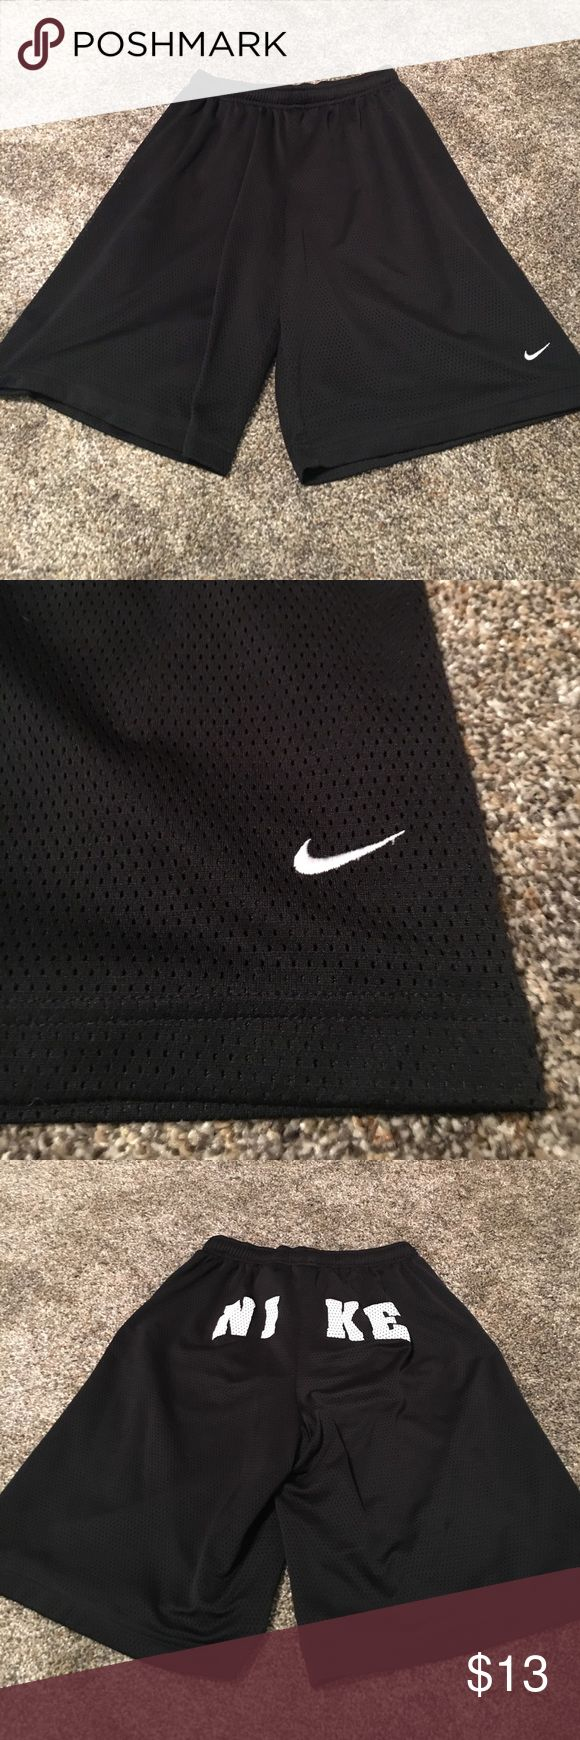 Black Nike Shorts Nike black and white mesh shorts are in excellent condition! Nike is spelled out on the butt. 100% polyester. Nike Bottoms Shorts